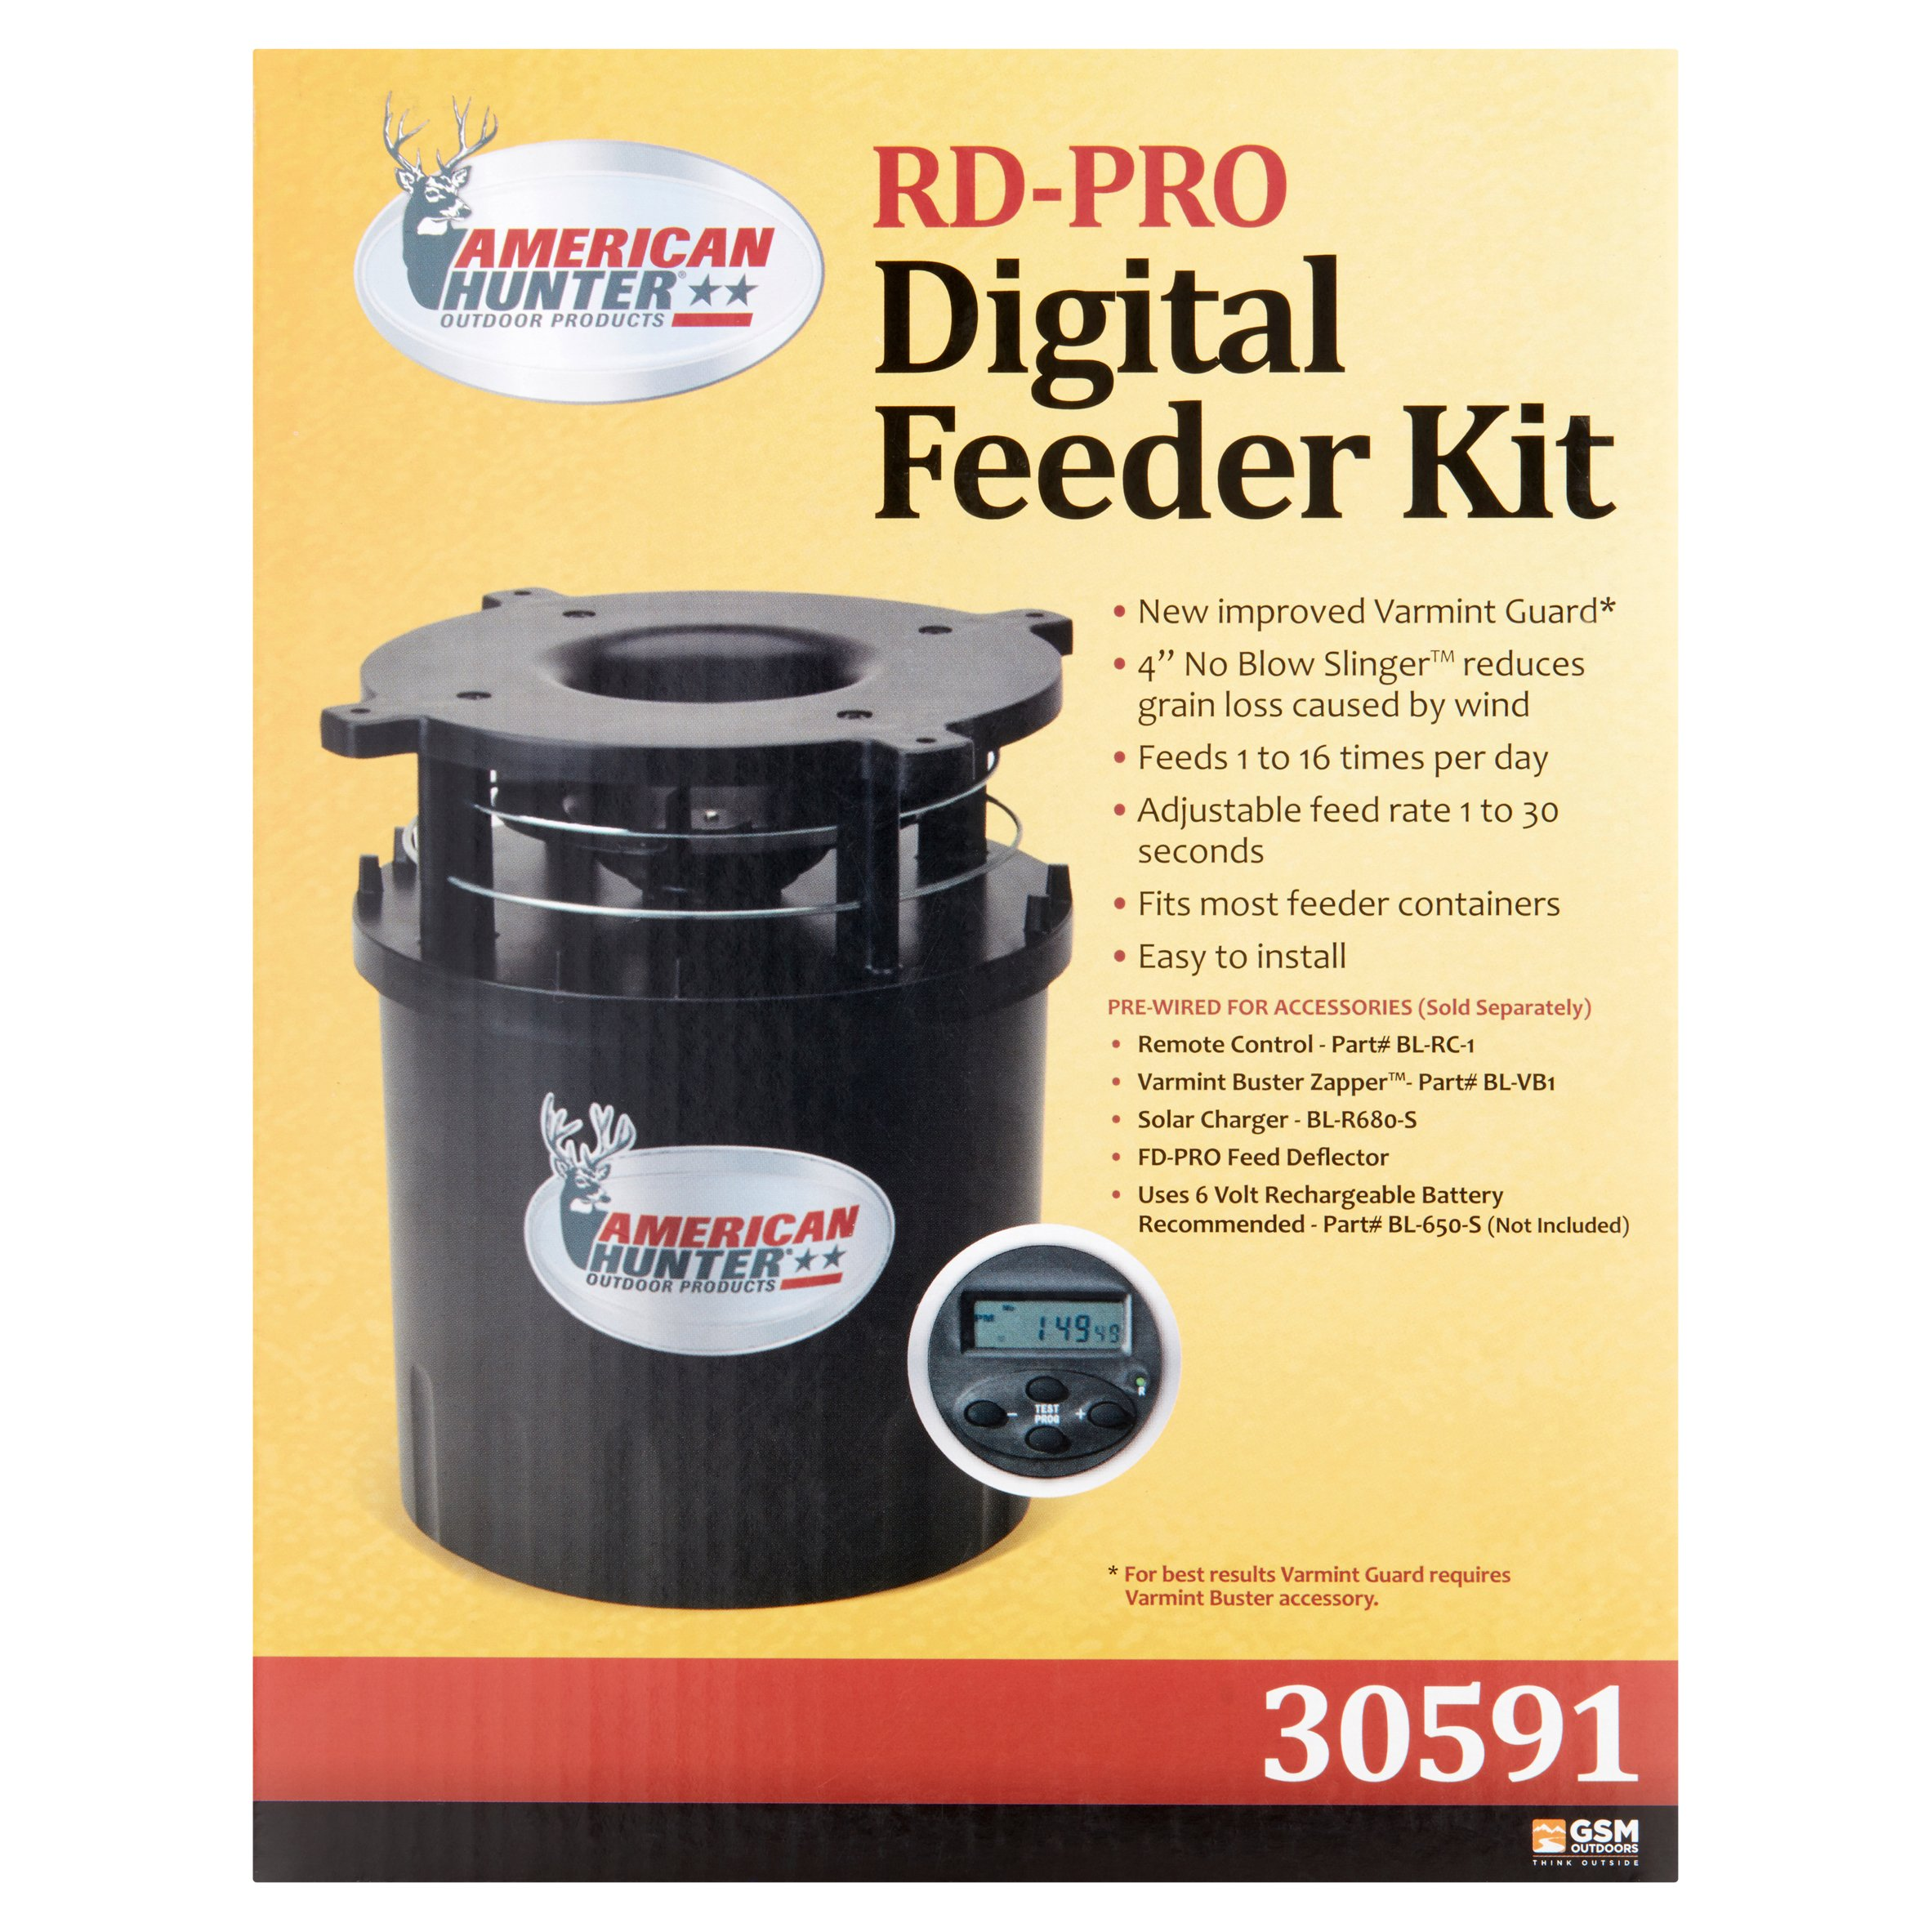 American Hunter RD-Pro Feeder Kit